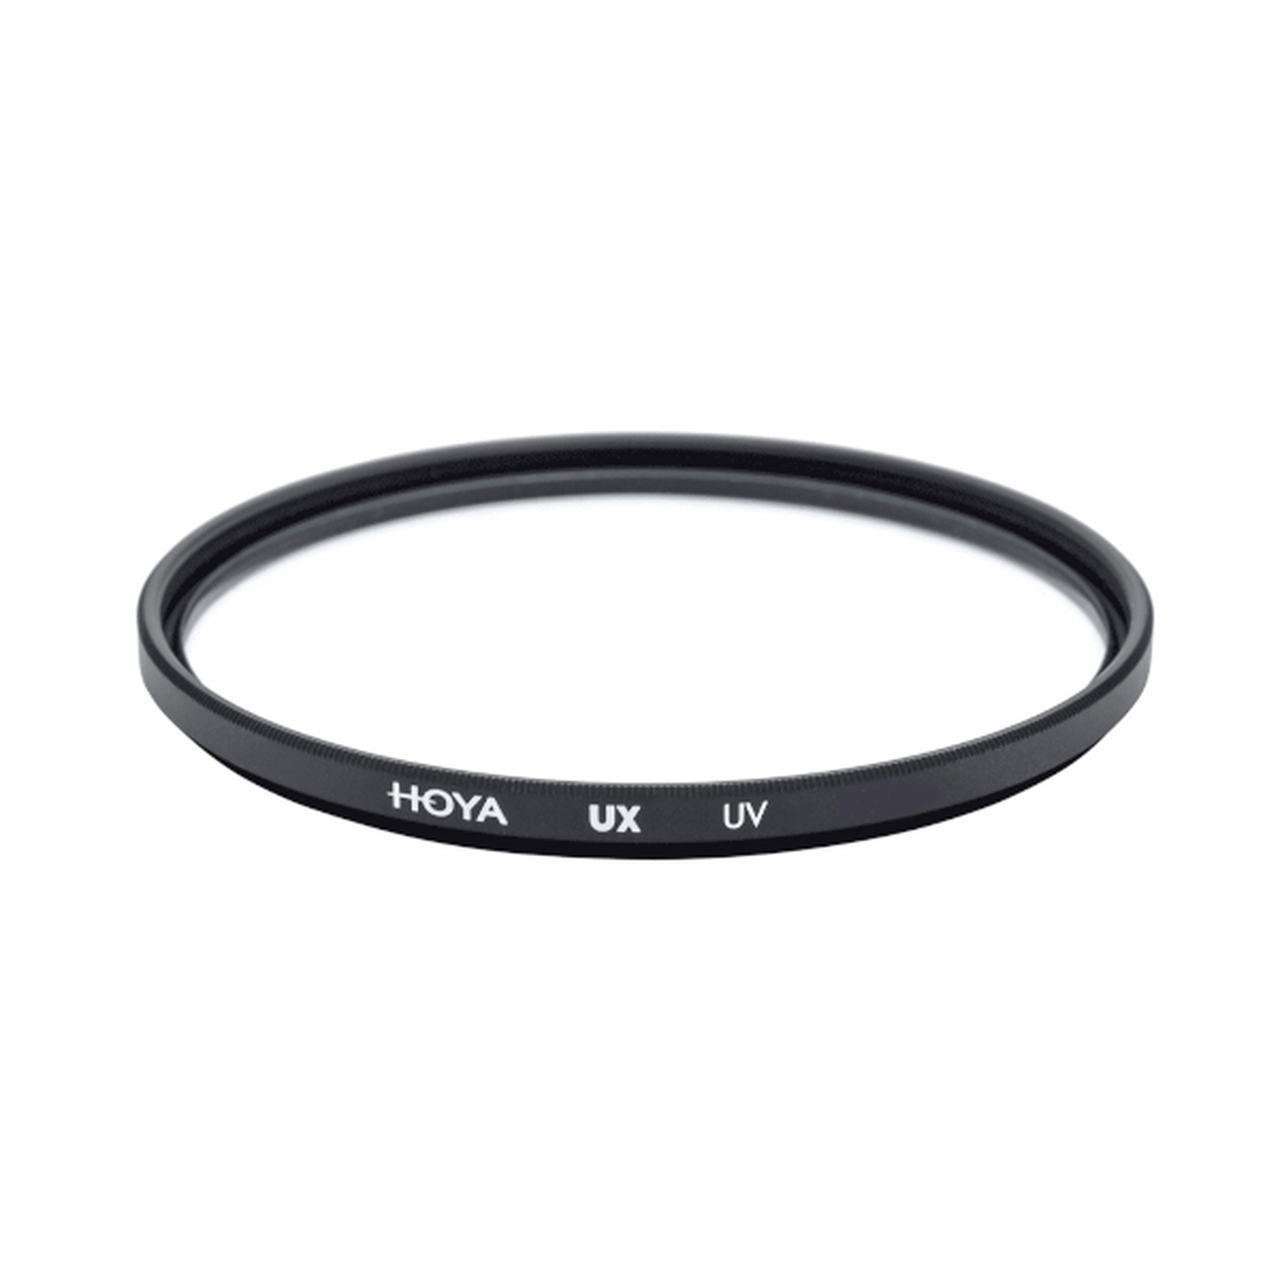 Hoya 52mm UX UV Filter